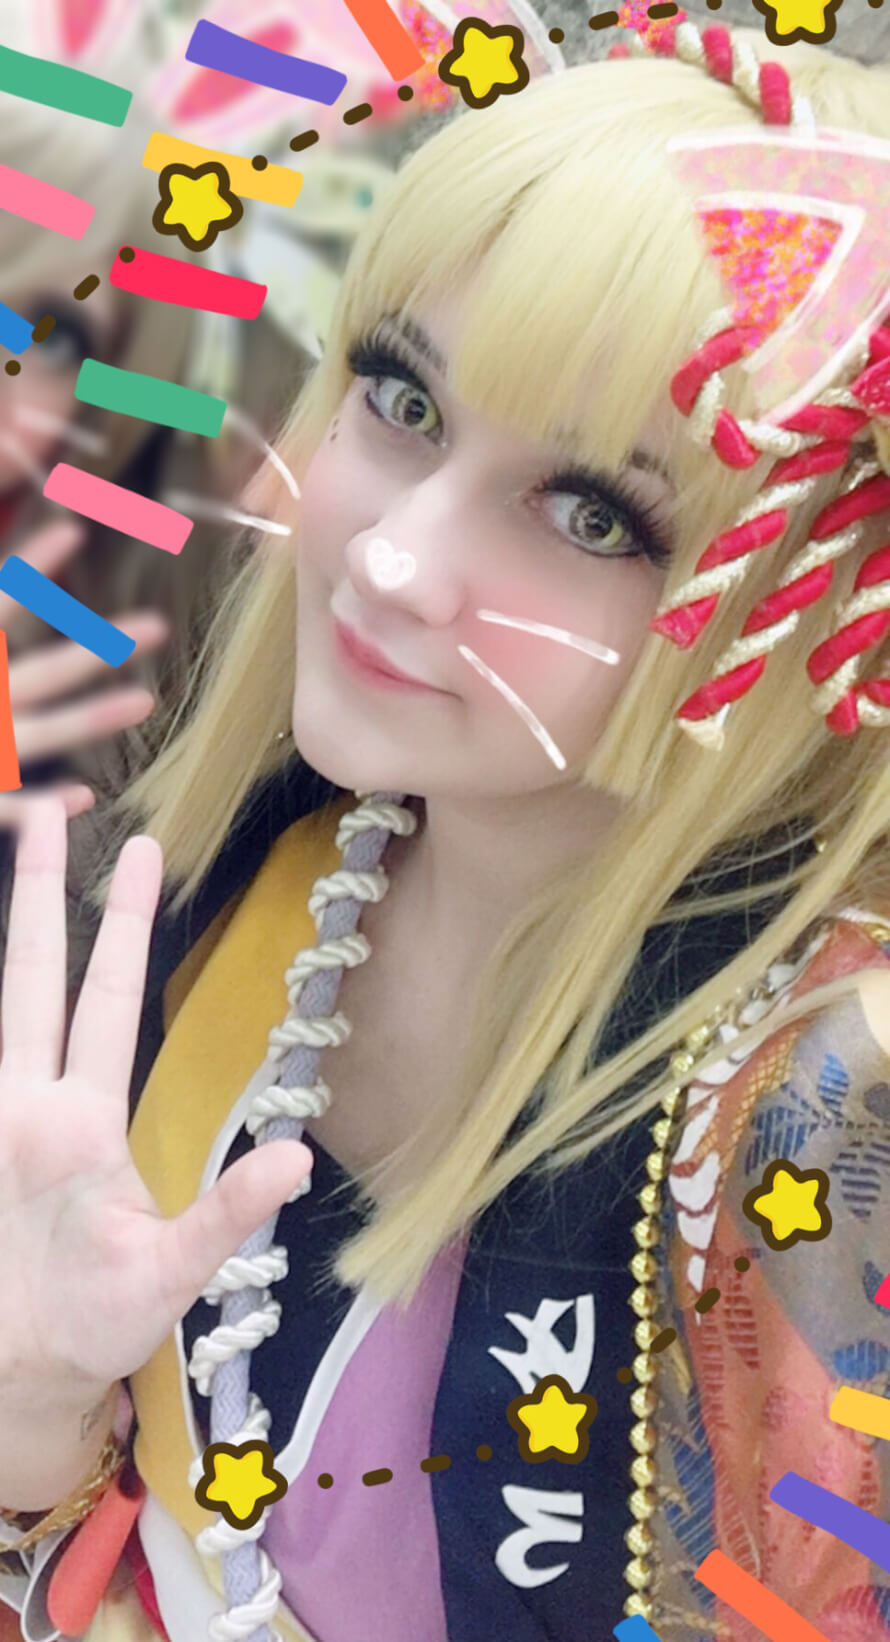 I'm not sure how it works, but I wanted to show a lil bit of my Kokoro cosplay! Hope you enjoy...